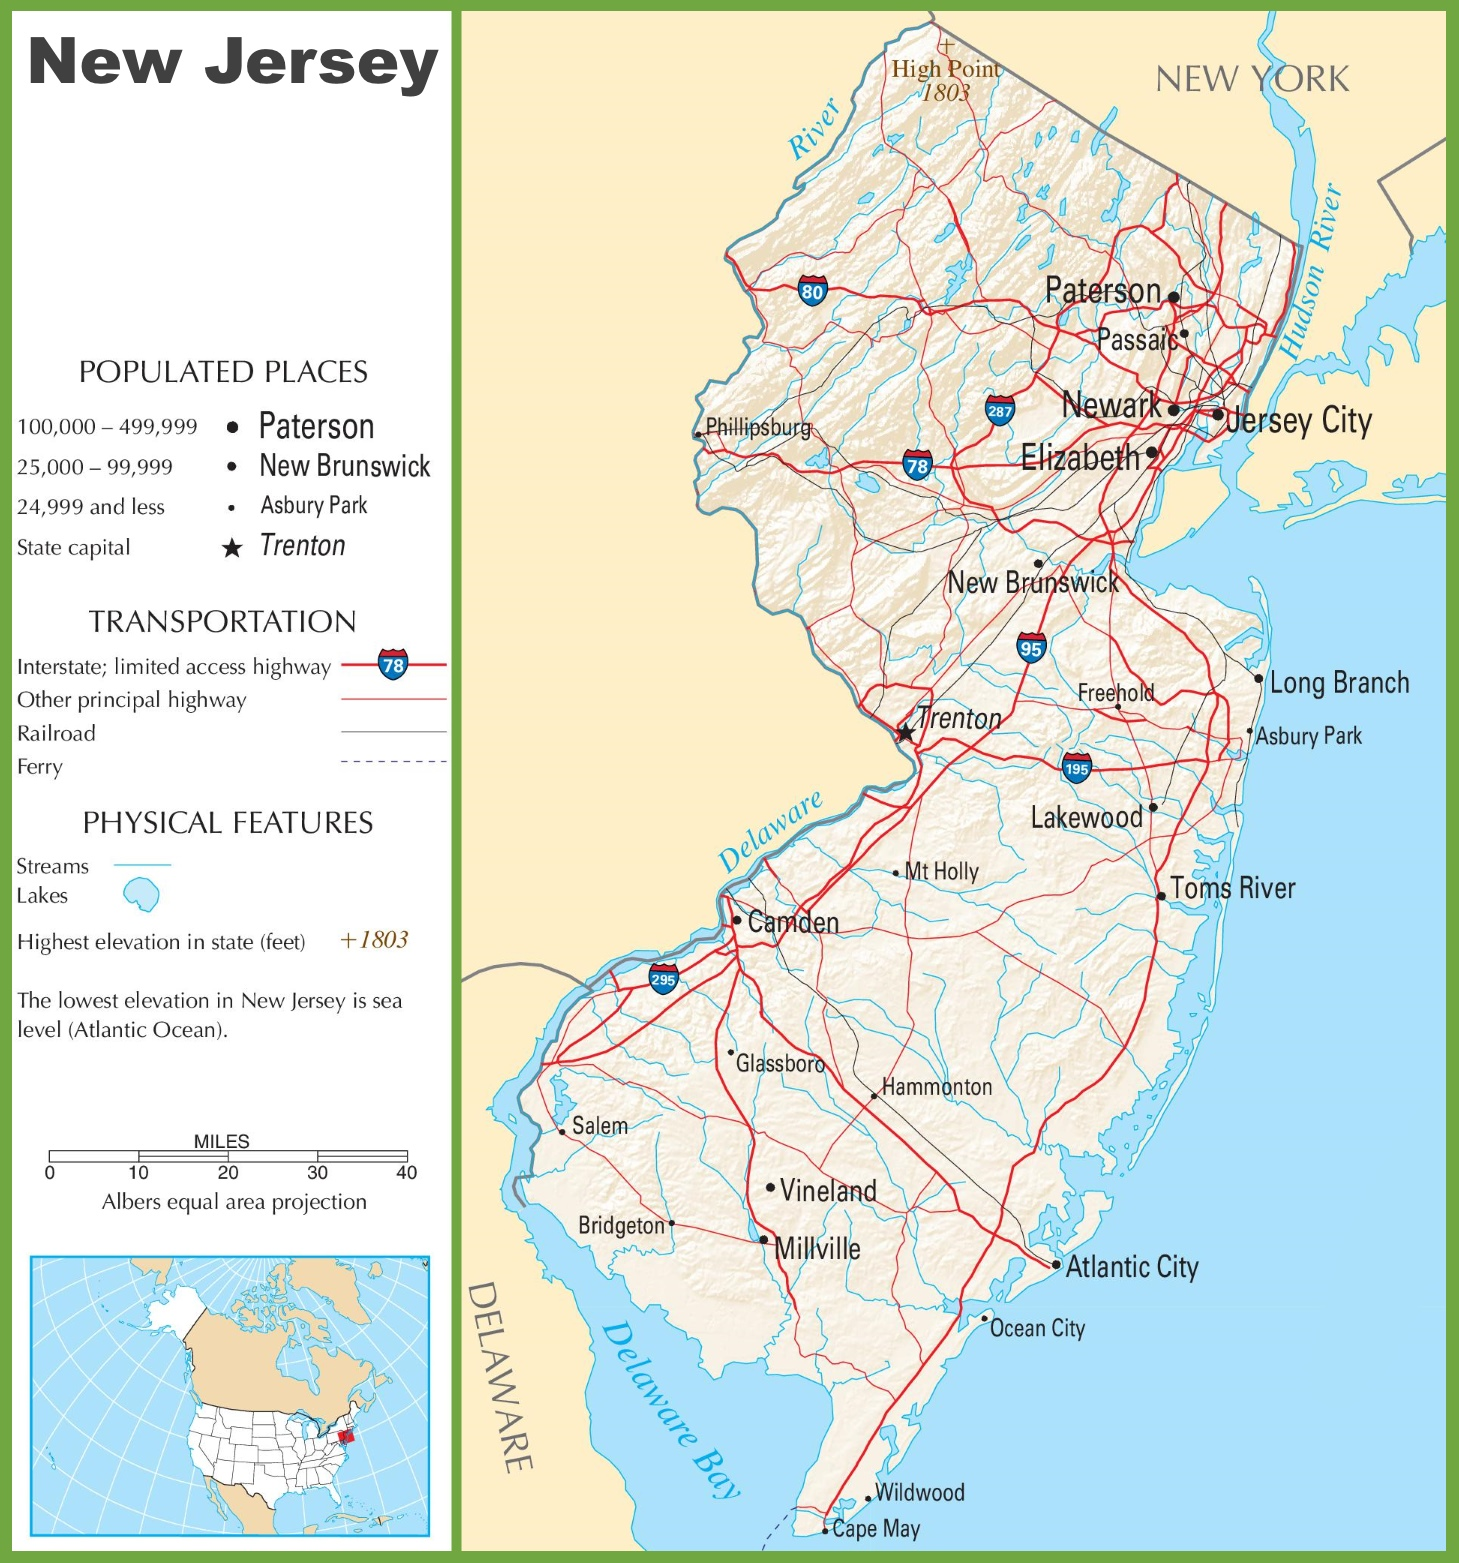 Nj State Map New Jersey State Maps | USA | Maps of New Jersey (NJ) Nj State Map